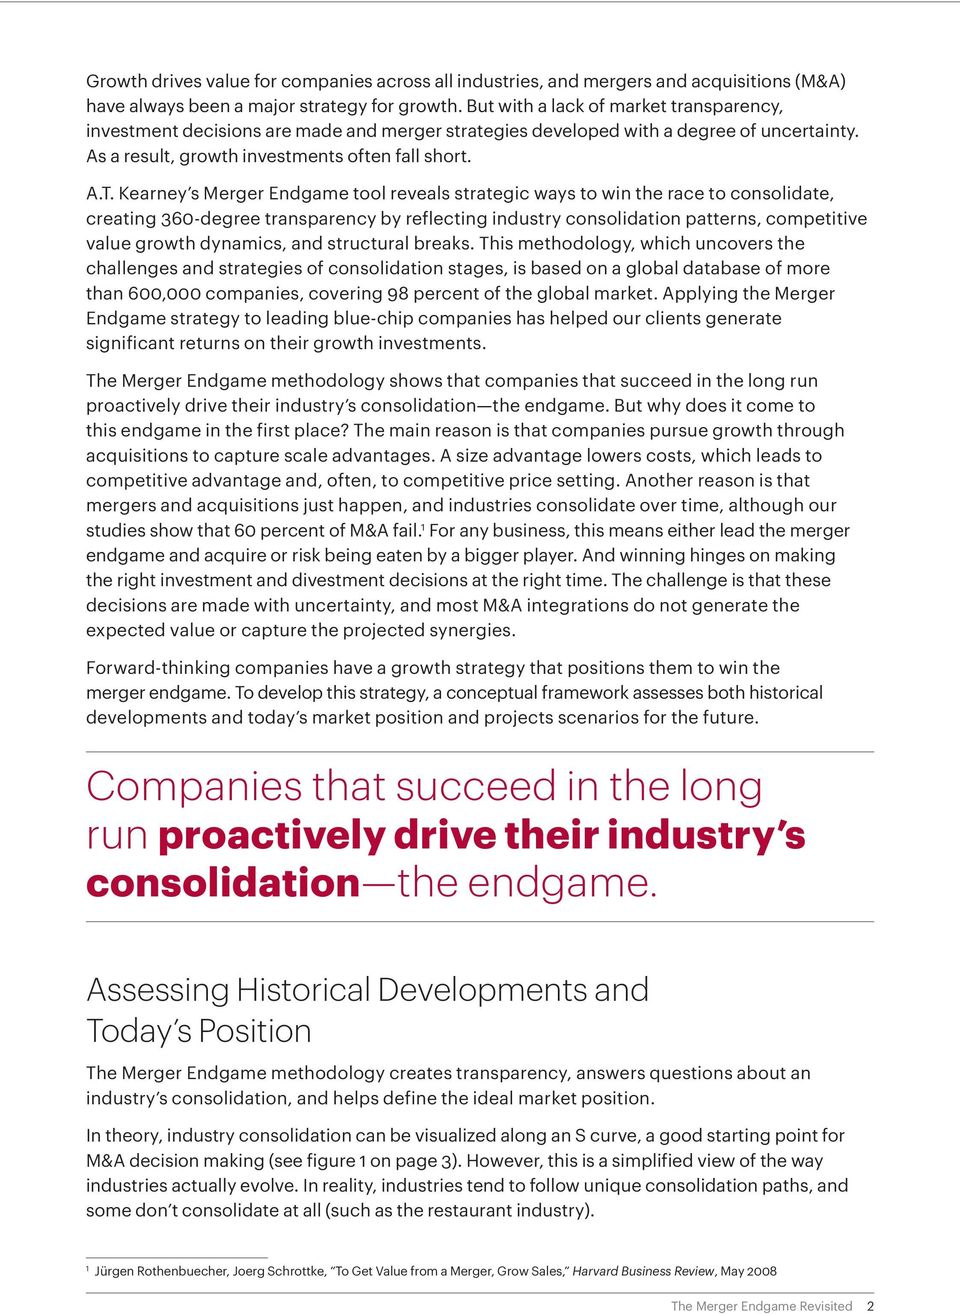 Kearney s Merger Endgame tool reveals strategic ways to win the race to consolidate, creating 360-degree transparency by reflecting industry consolidation patterns, competitive value growth dynamics,